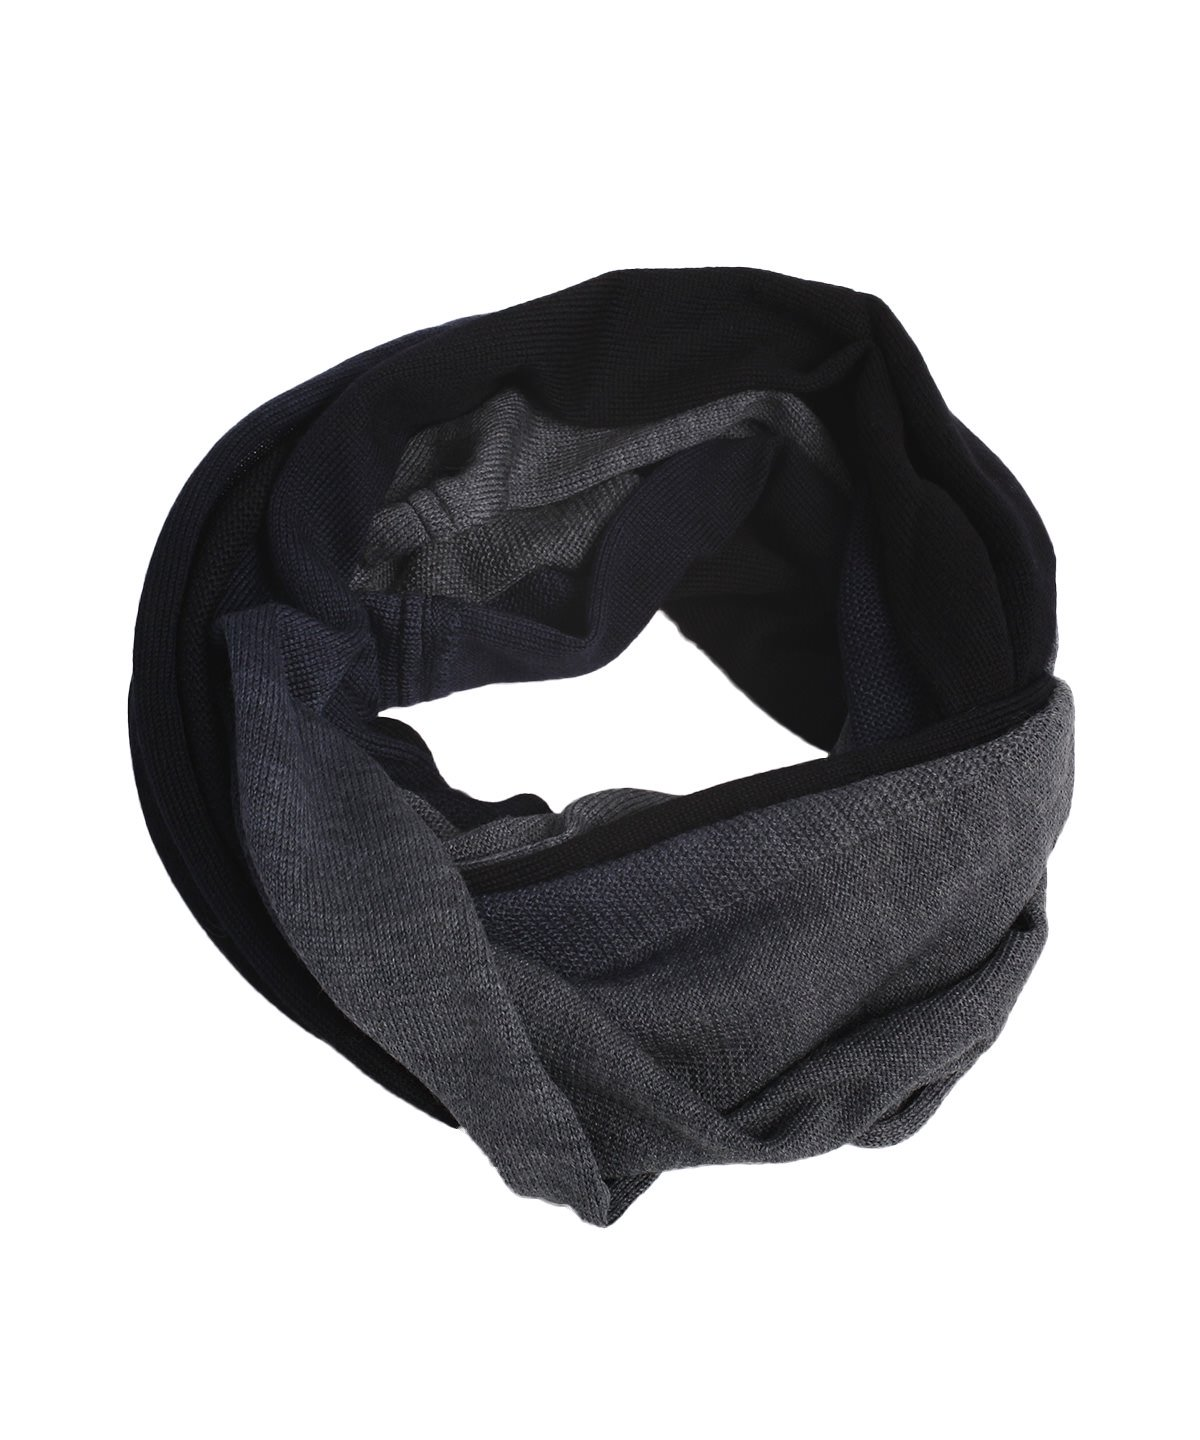 GRADATION TWIST NECKWARMER 詳細画像1